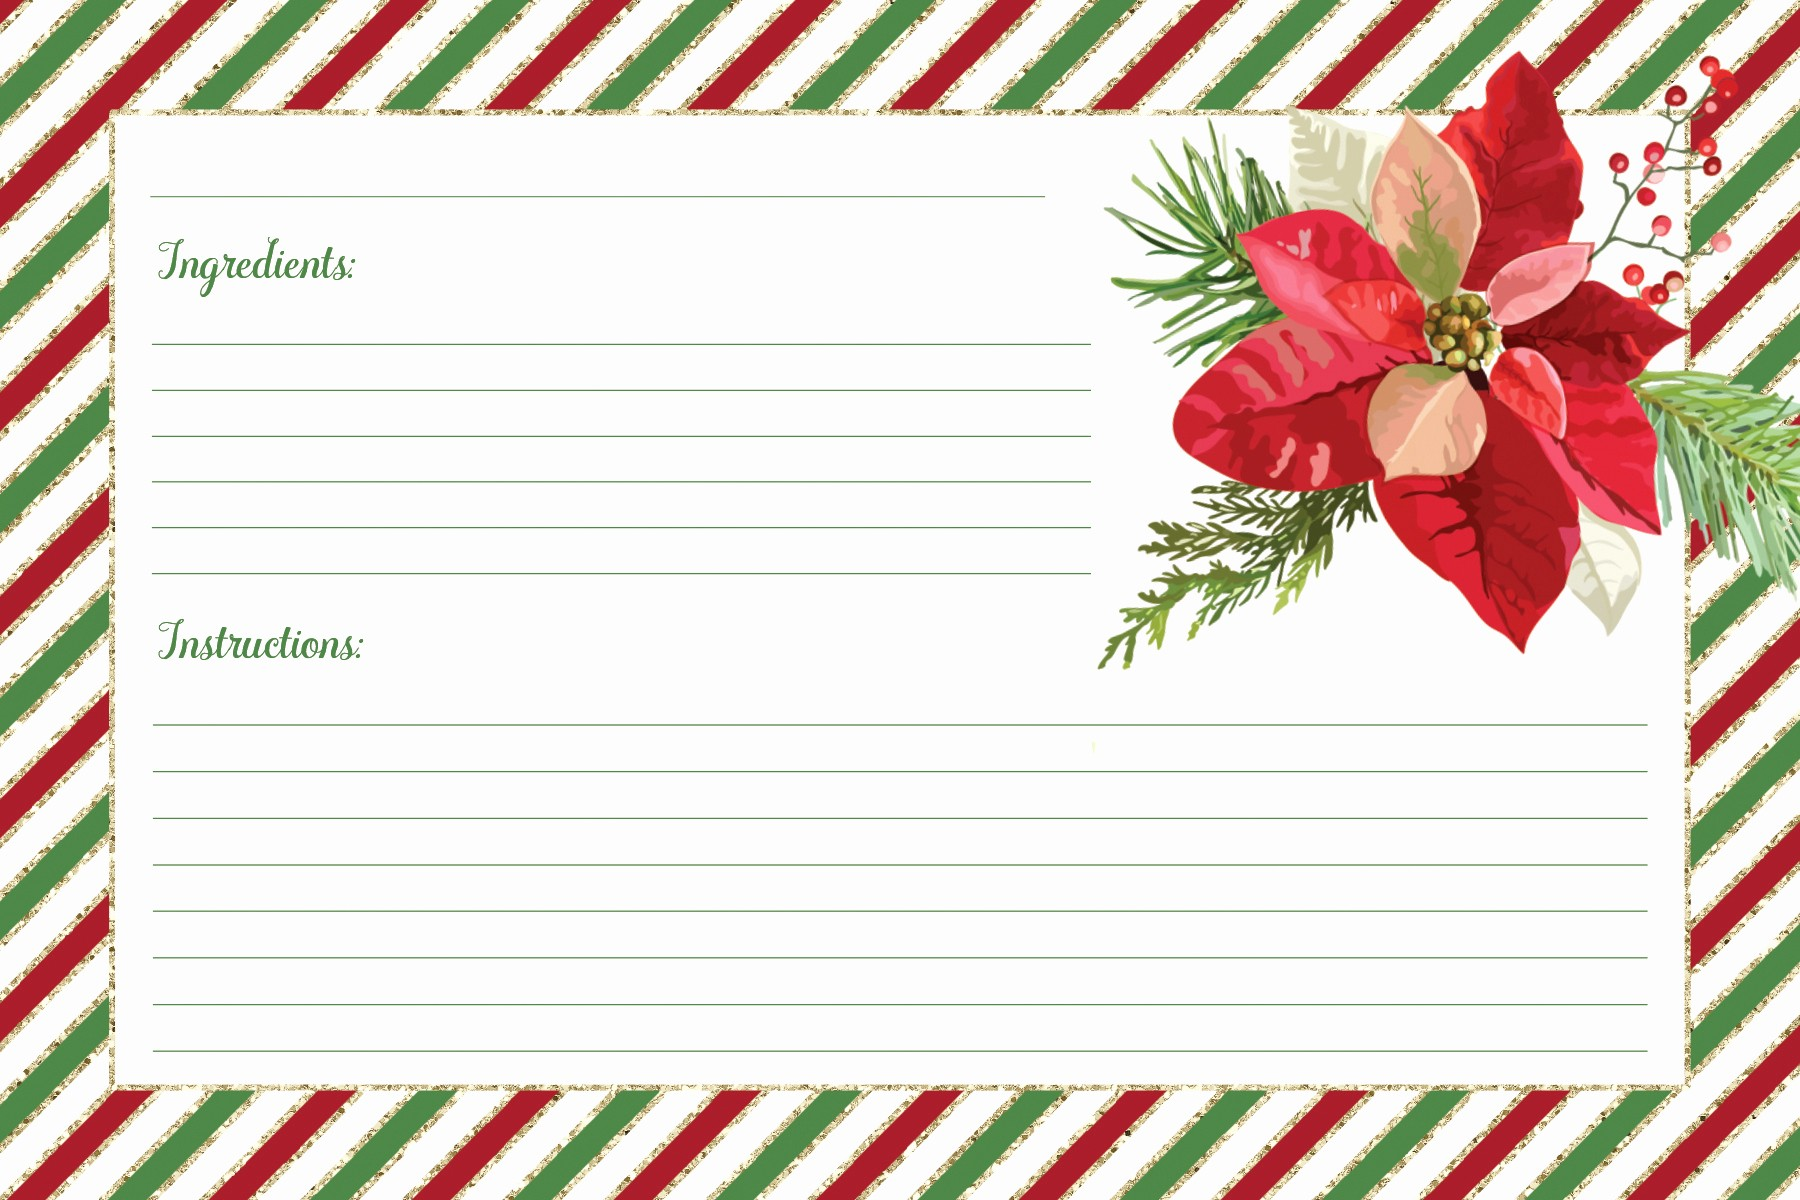 Holiday Recipe Card Template Free Lovely Free Printable Christmas Recipe Cards